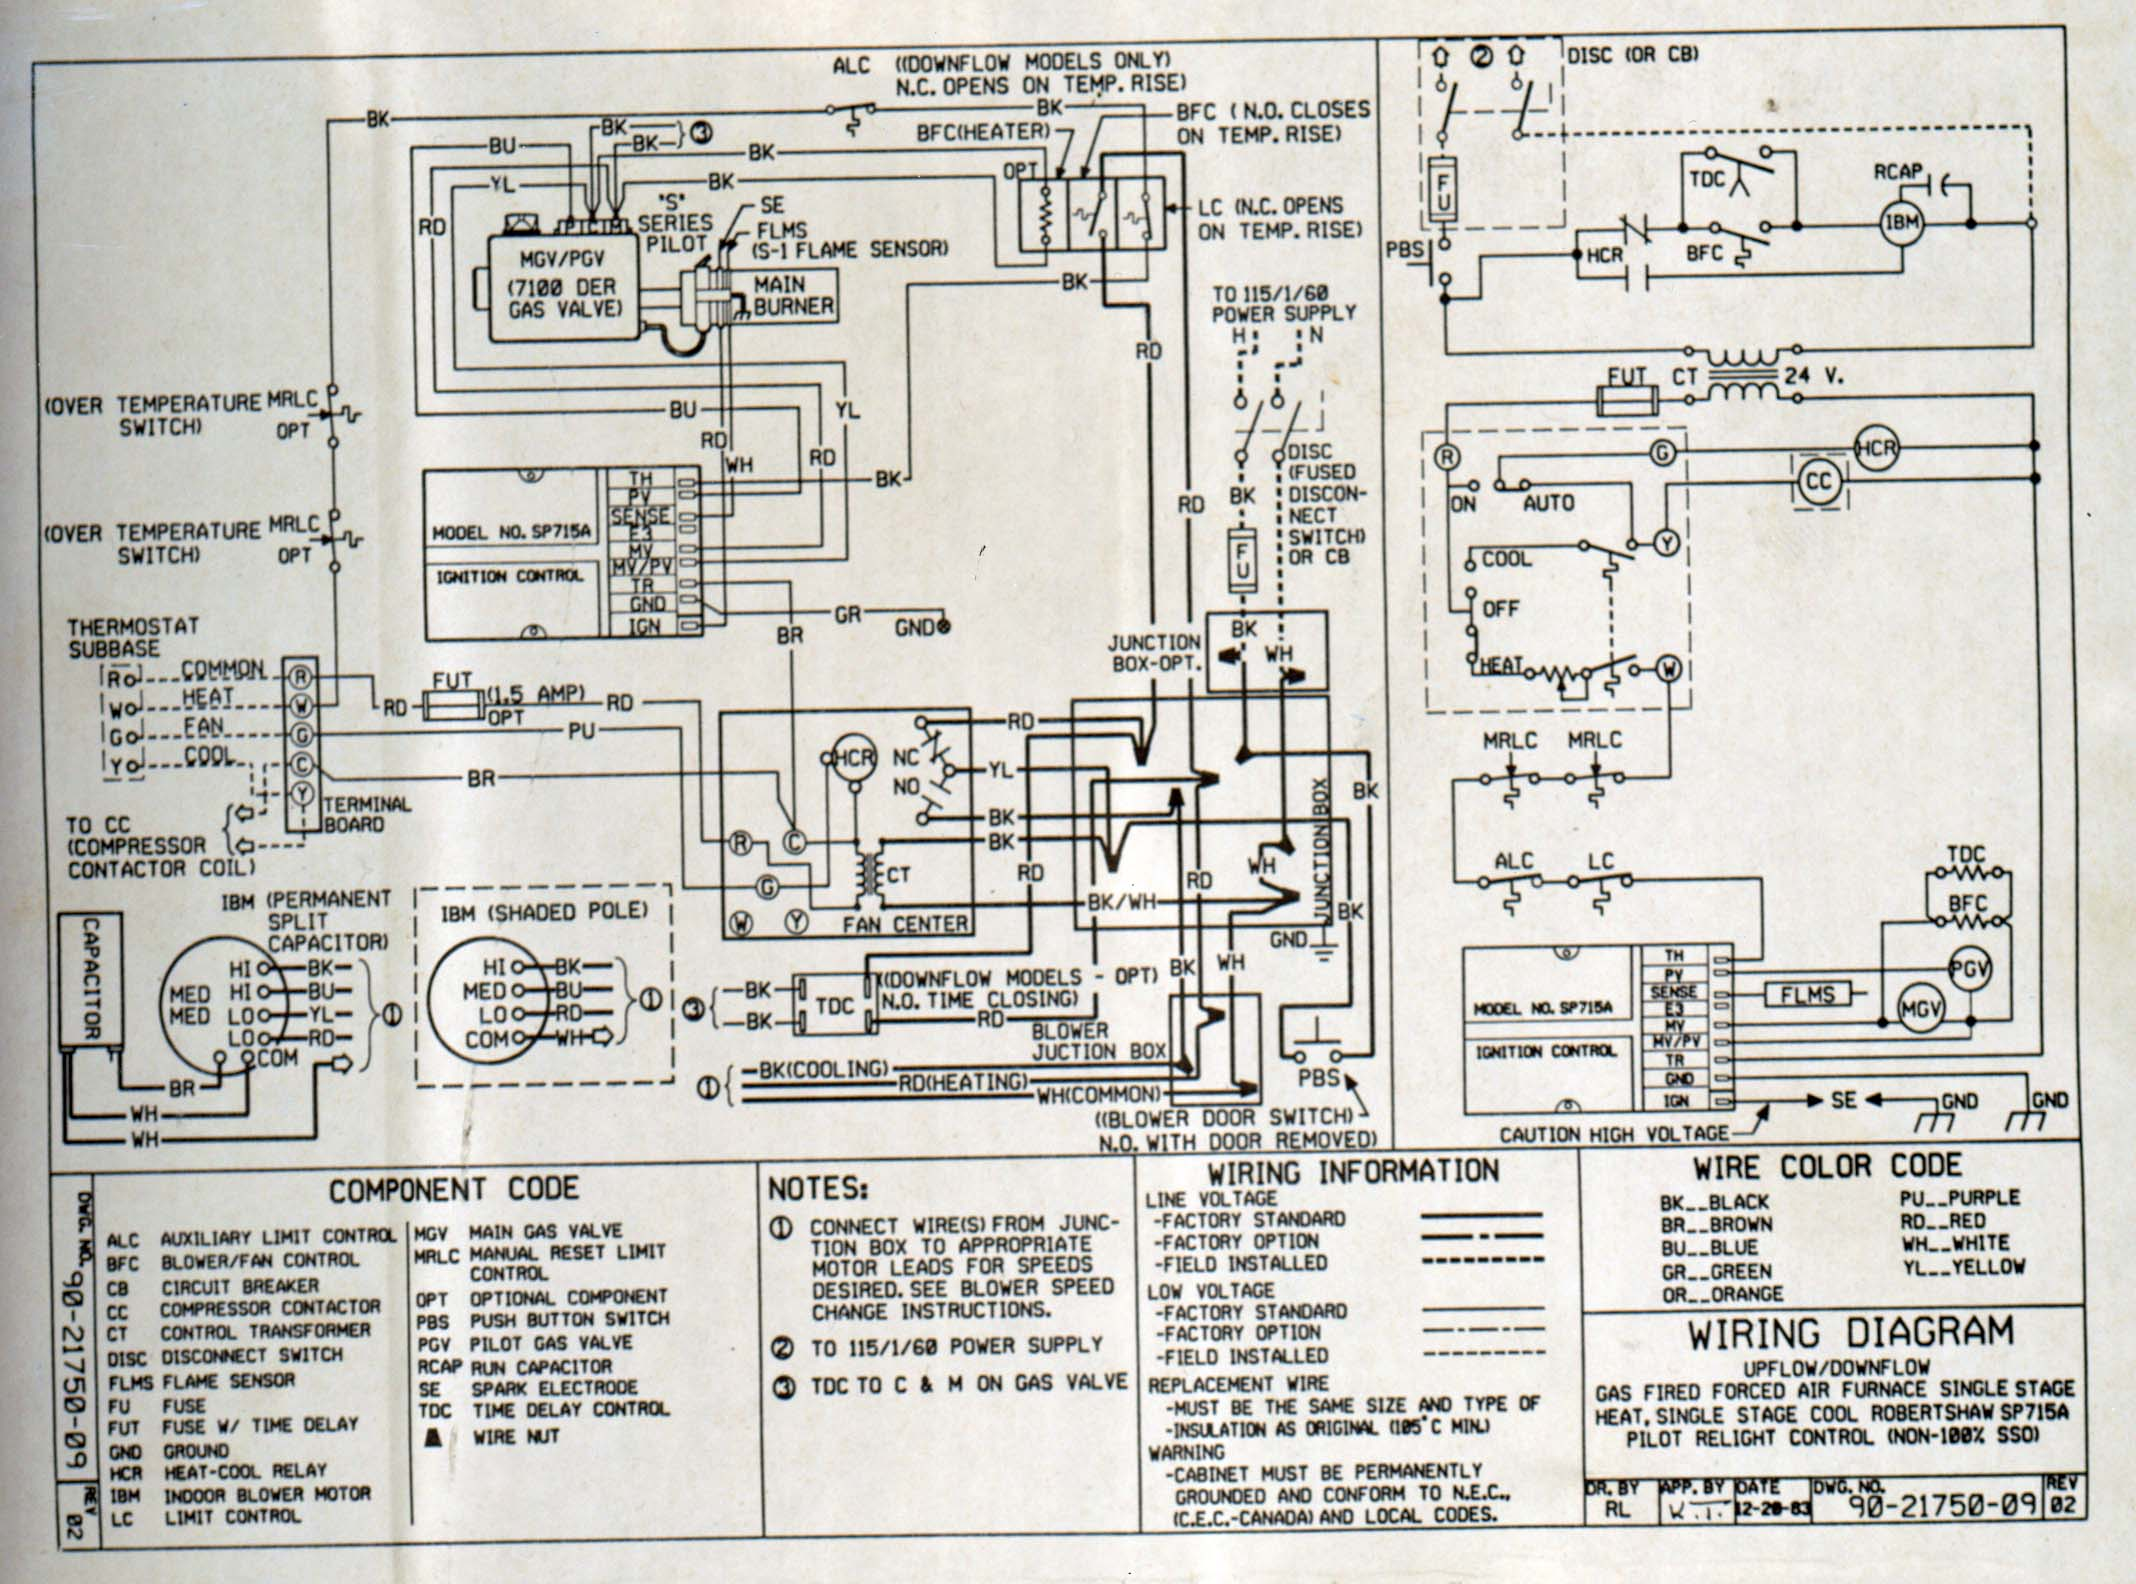 HVAC Fan Relay Wiring Diagram http://www.justanswer.com/hvac/4lmmx-furnace-fan-won-t-stop-running-heating-cycle.html